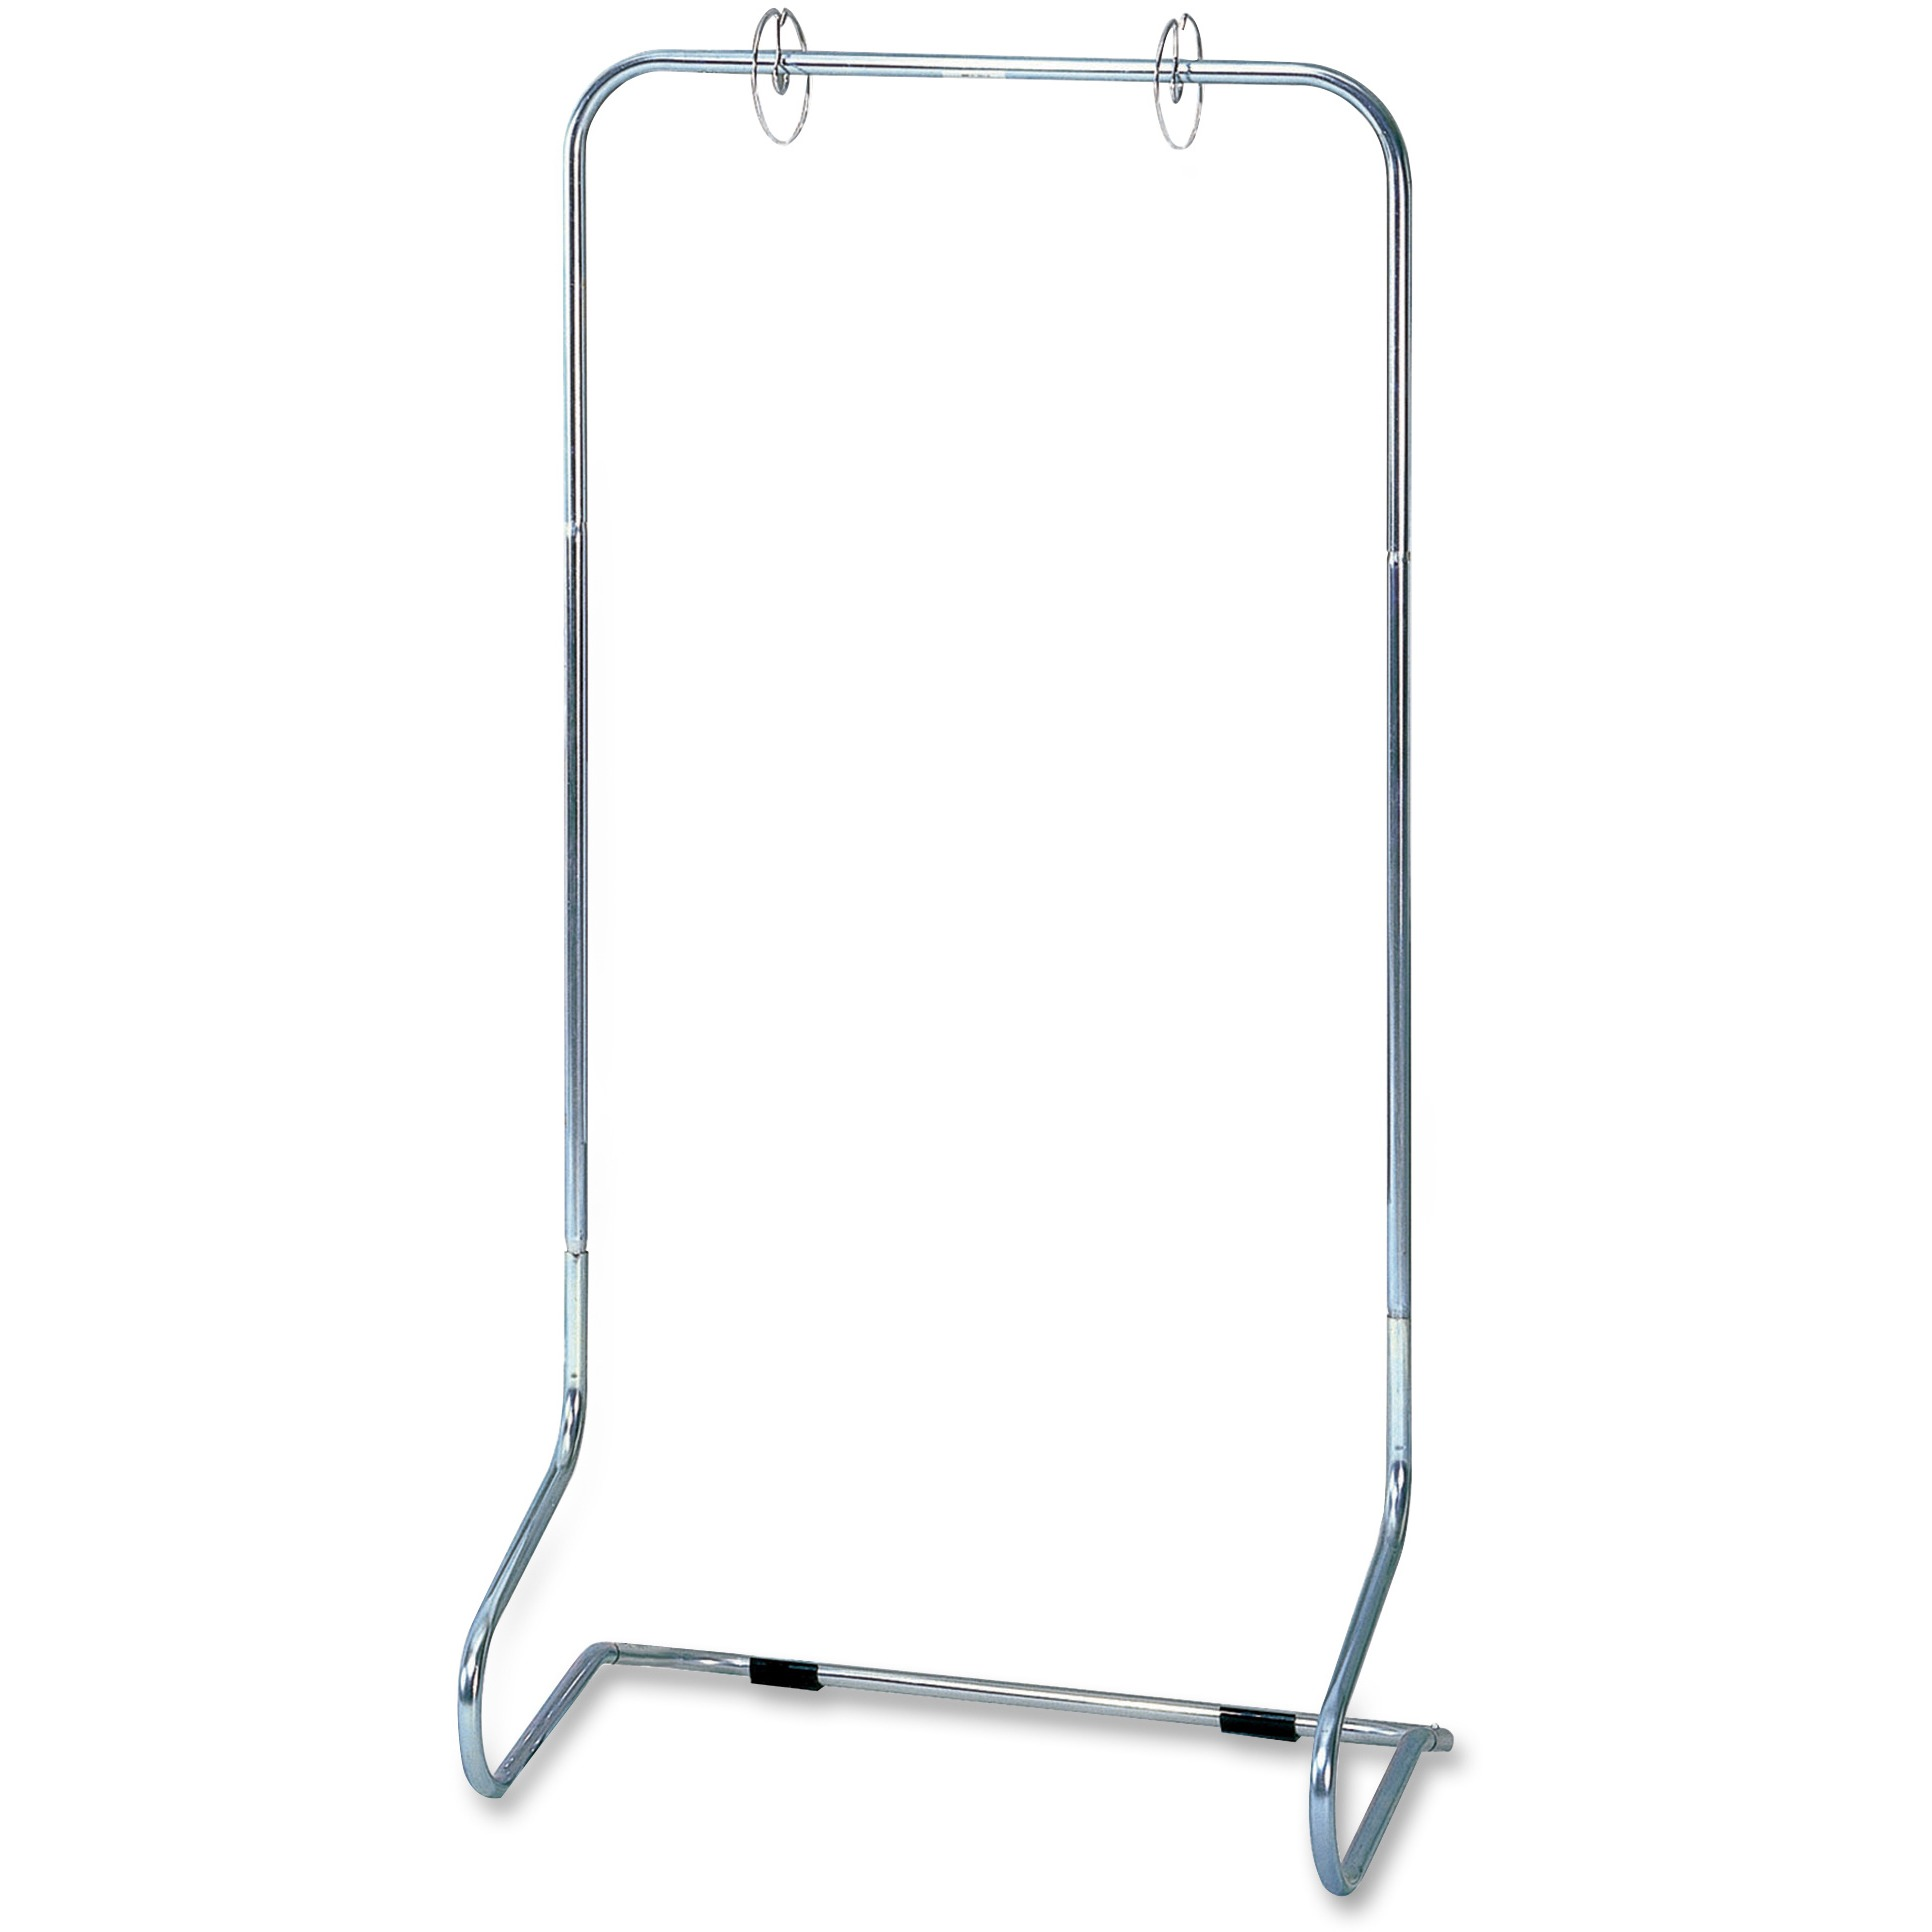 "Pacon Chart Stand with Chart Rings, 50"" x 28\ by PACON CORPORATION"